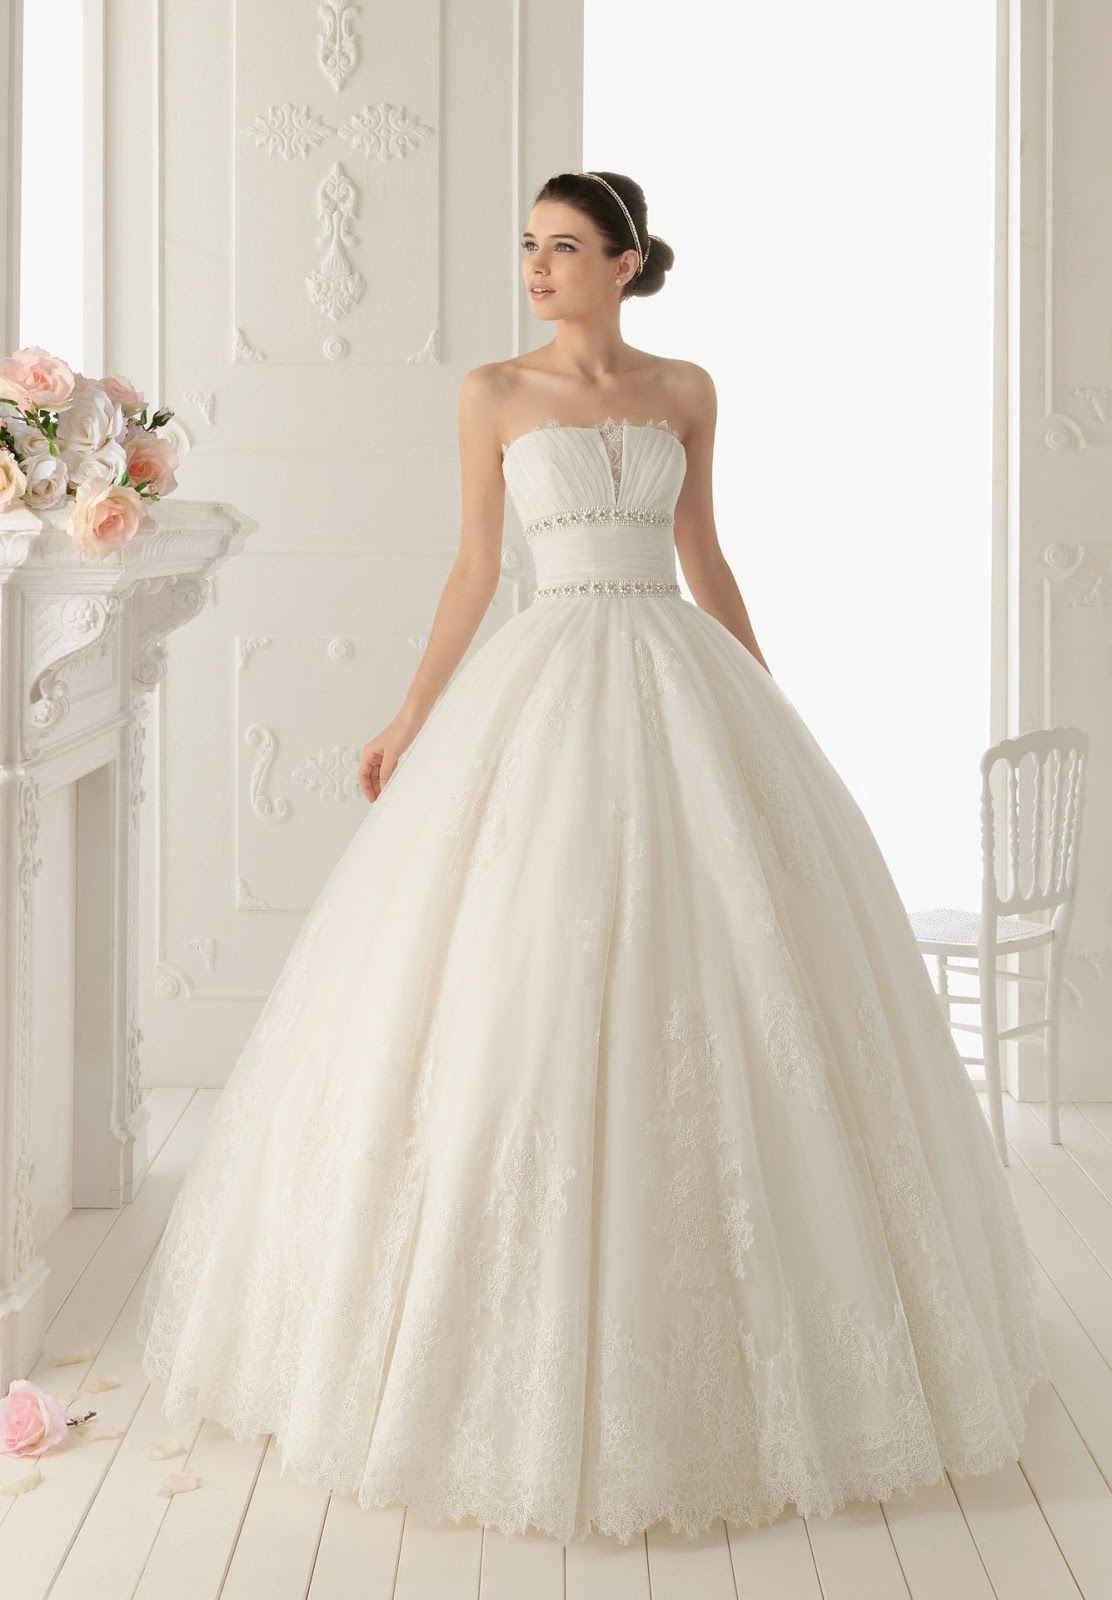 Whiteazalea ball gowns lace ball gown wedding dress for Elegant wedding party dresses